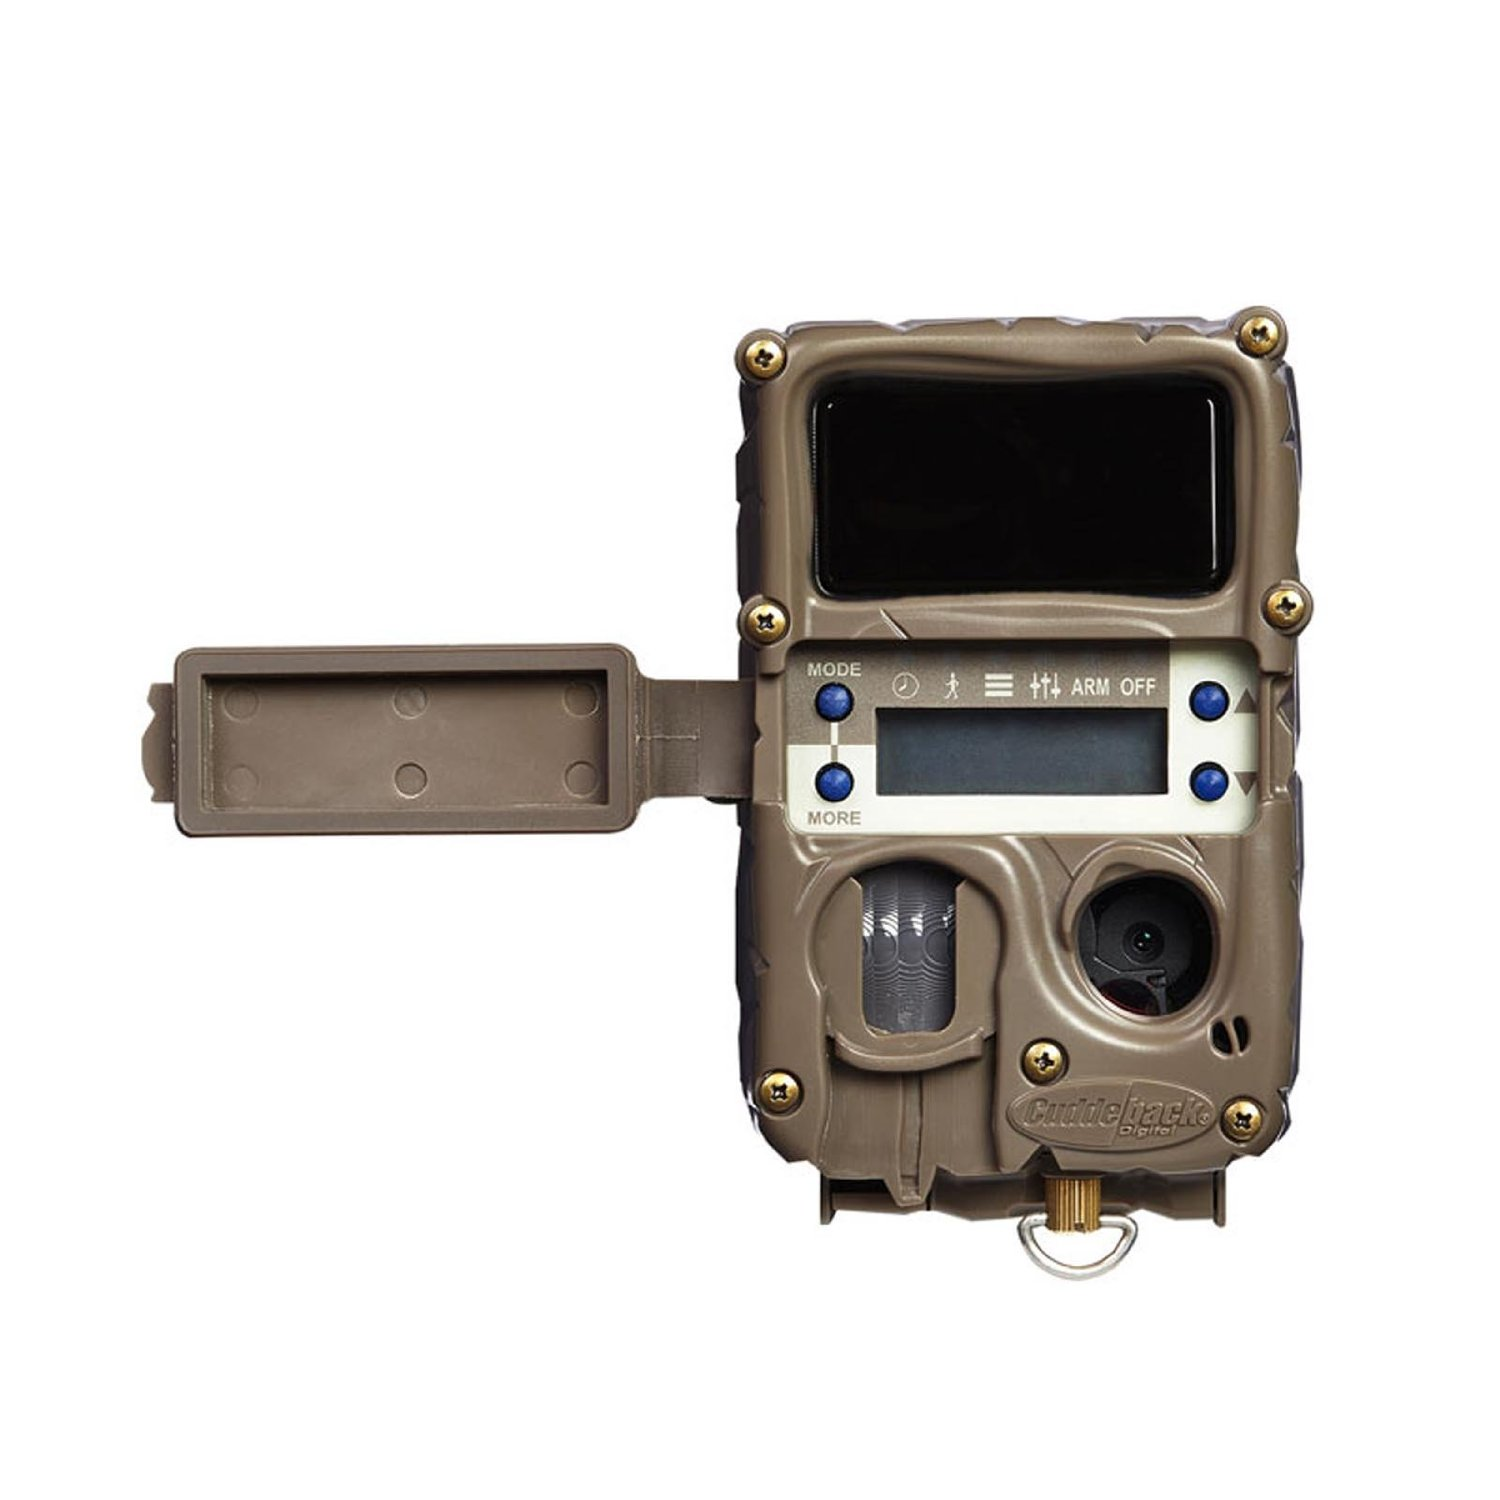 Cuddeback Black Flash e3 controls